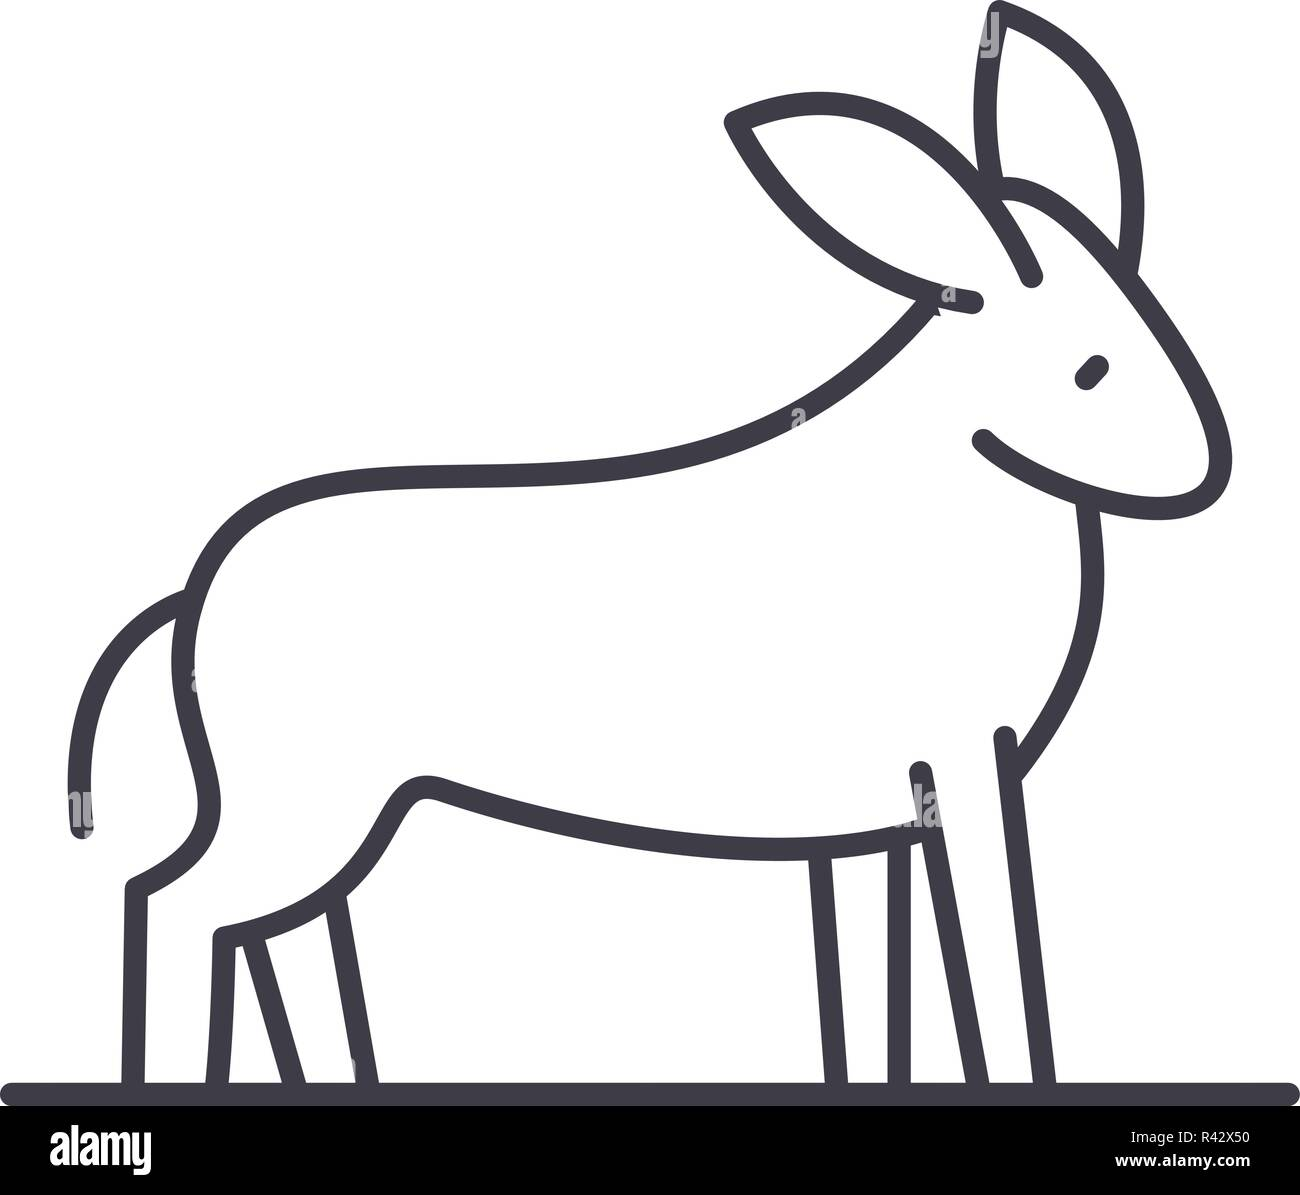 Donkey line icon concept. Donkey vector linear illustration, symbol, sign - Stock Image